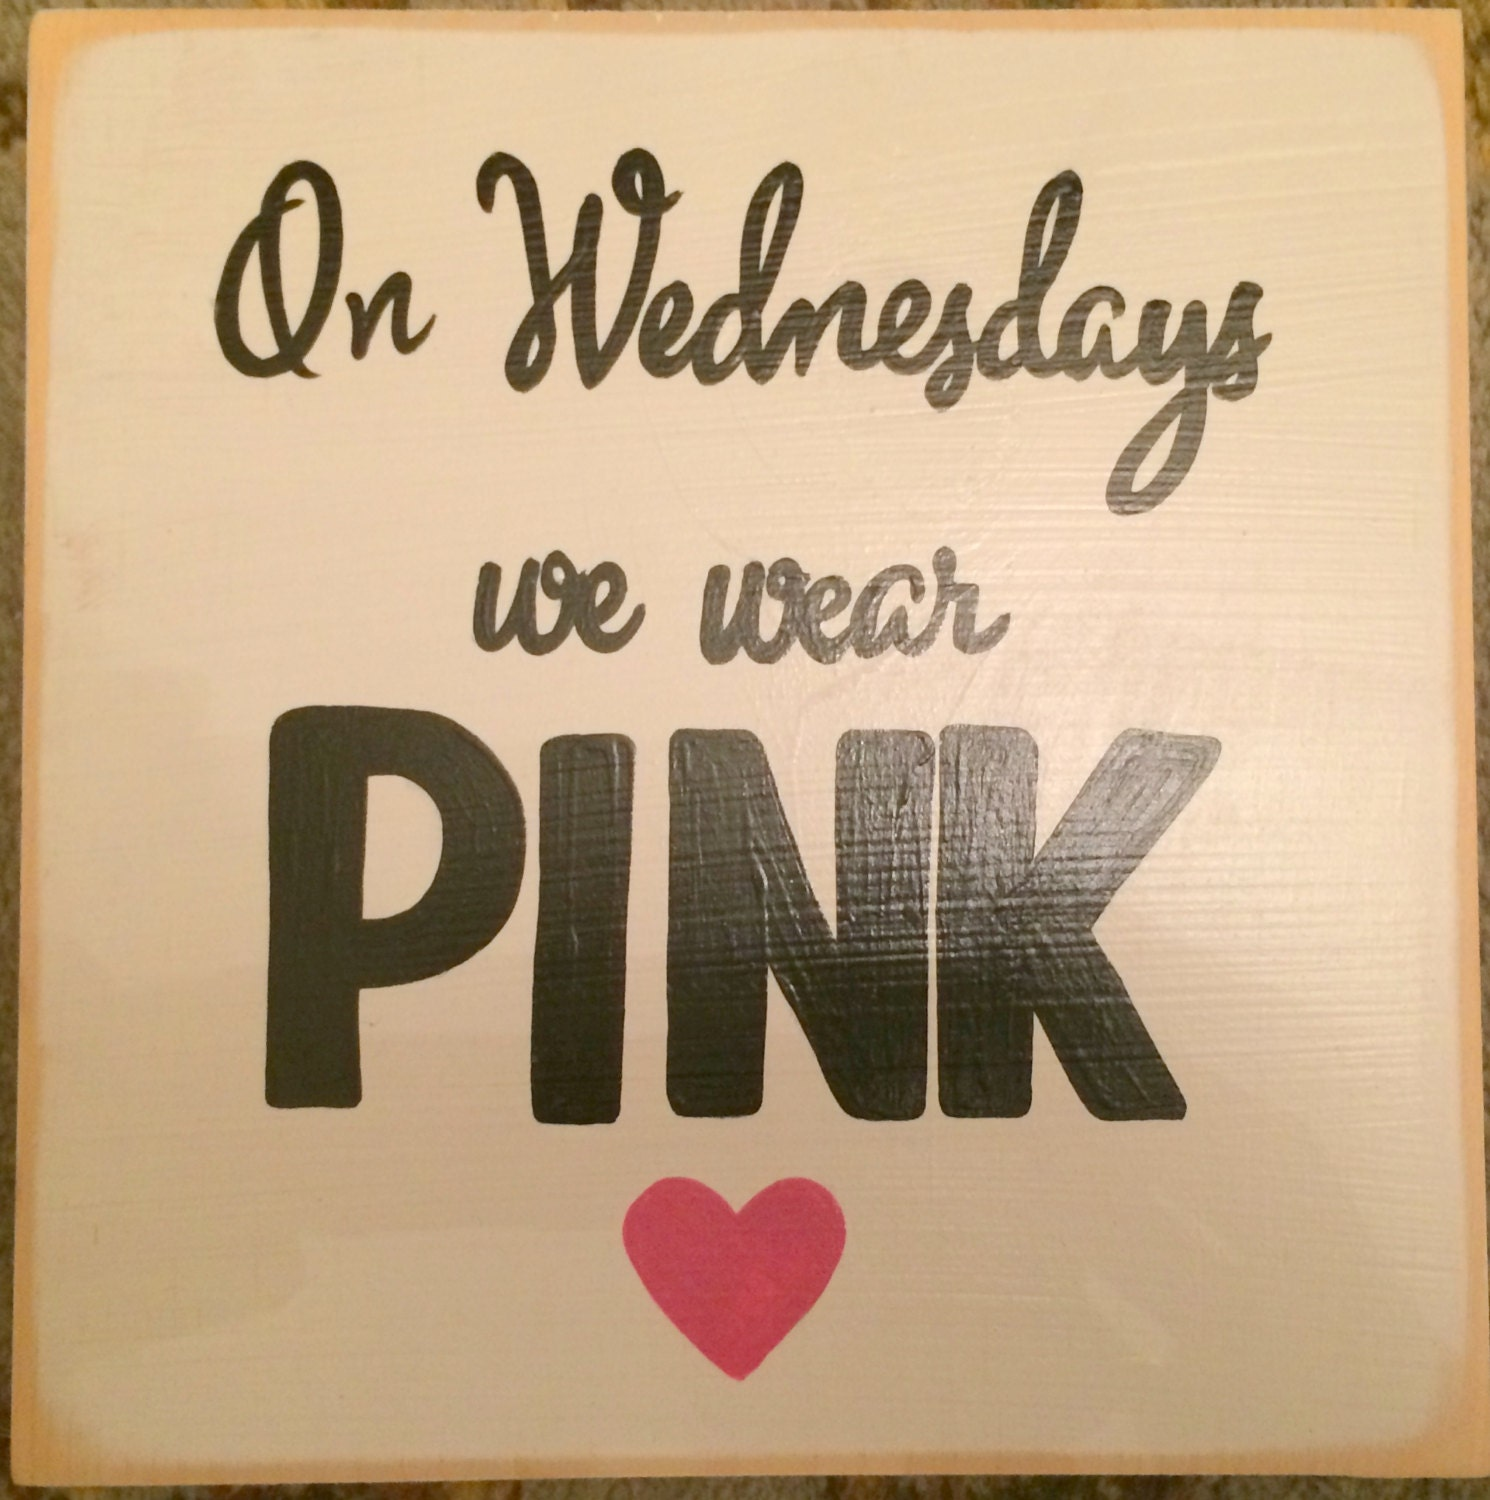 Mean Girls Quotes On Wednesdays We Wear Pink: On Wednesdays We Wear PINK Sign Plaque Mean Girls Quote Power